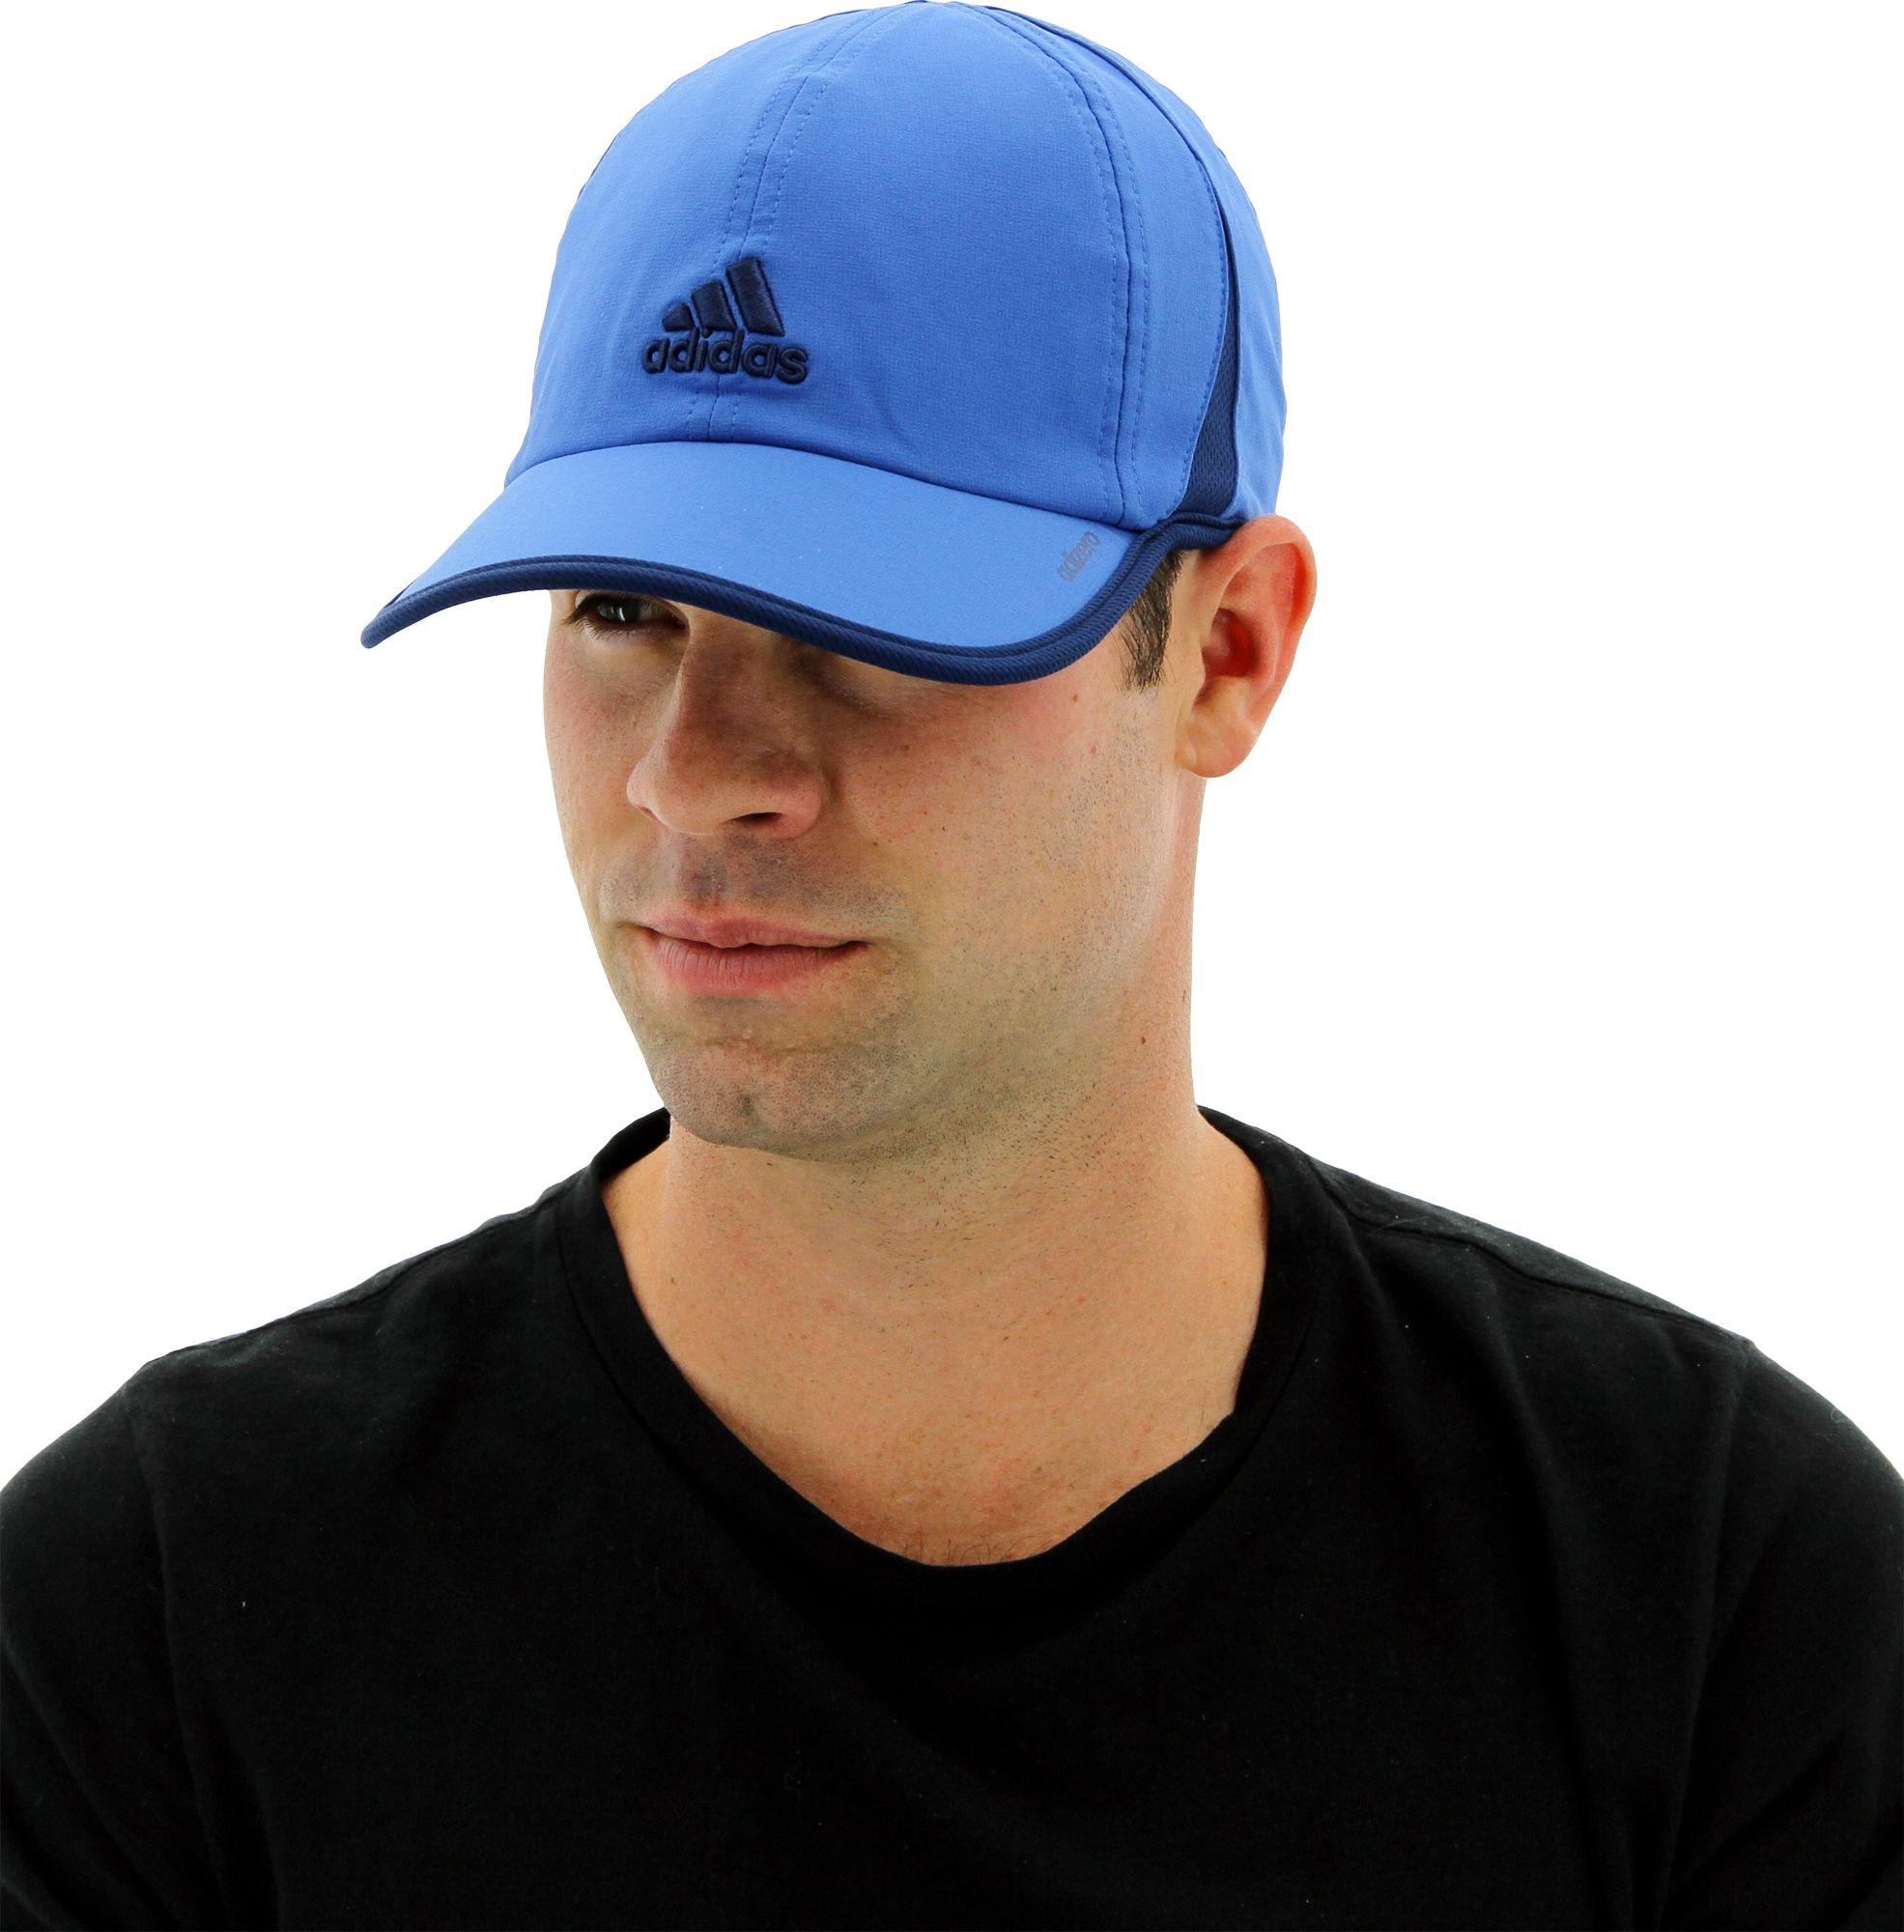 5 Baseball Caps For Men Available In Amazon - Fashion Unlock e9491ac1453